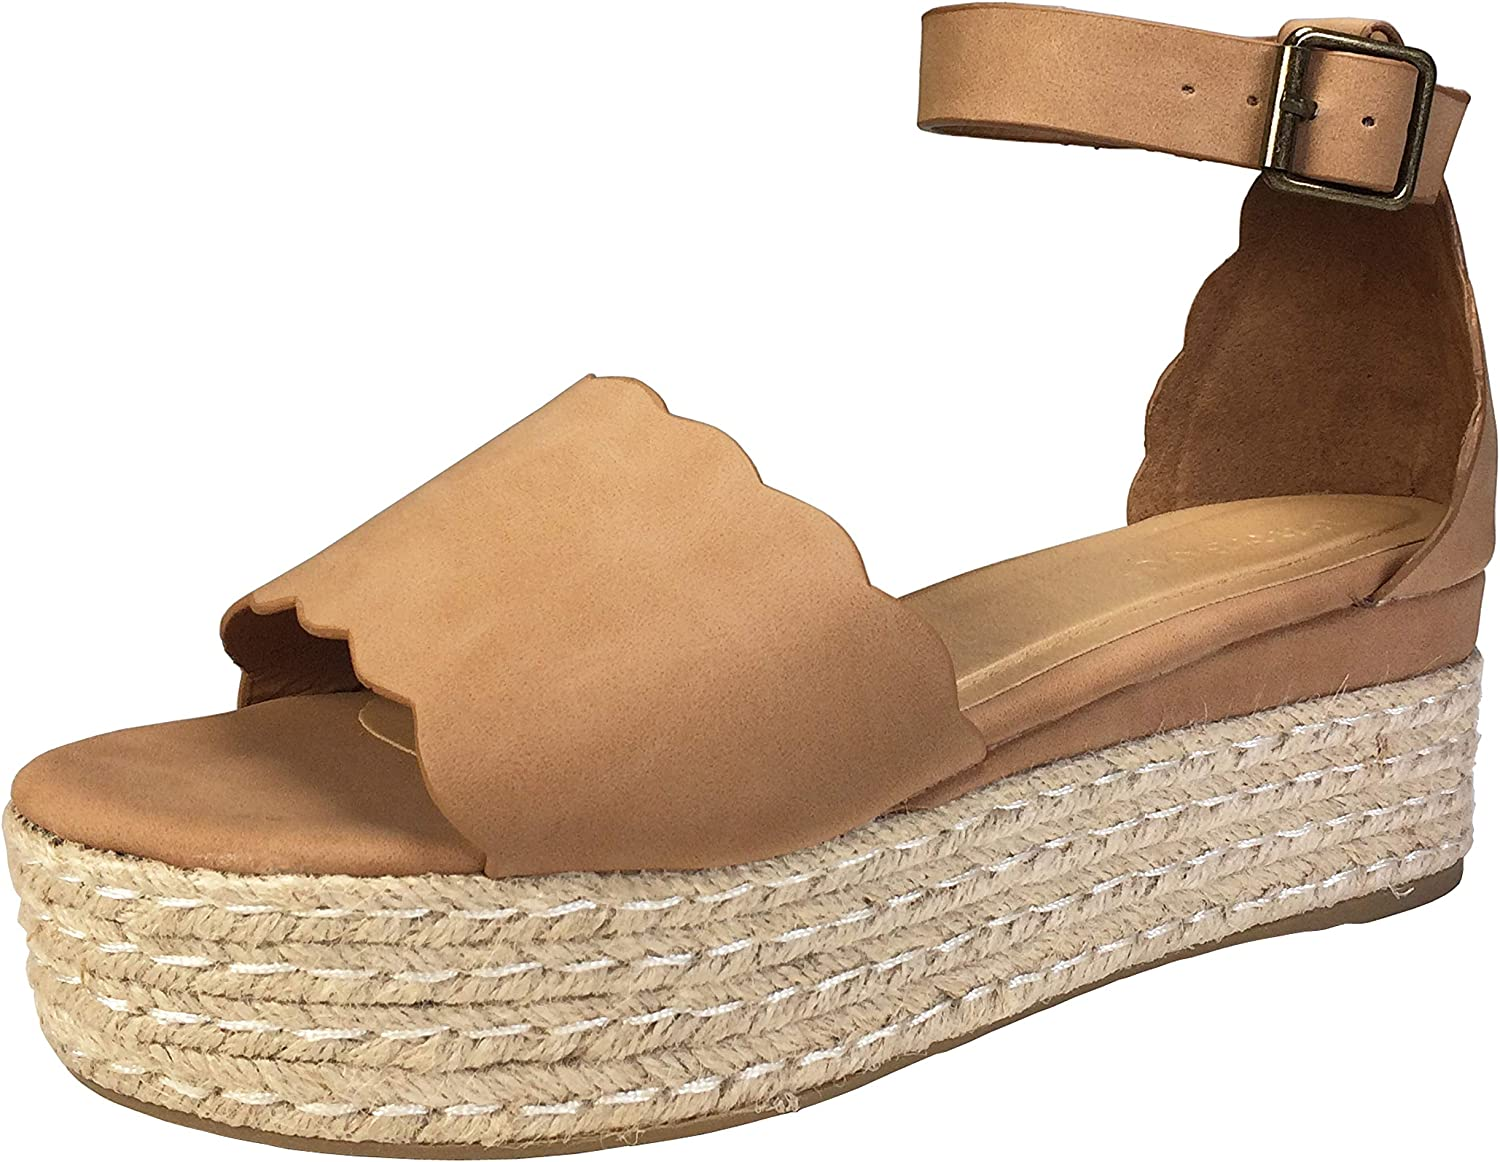 BAMBOO Women's Scallop Edged Single Band Espadrilles Platform Sandal with Ankle Strap